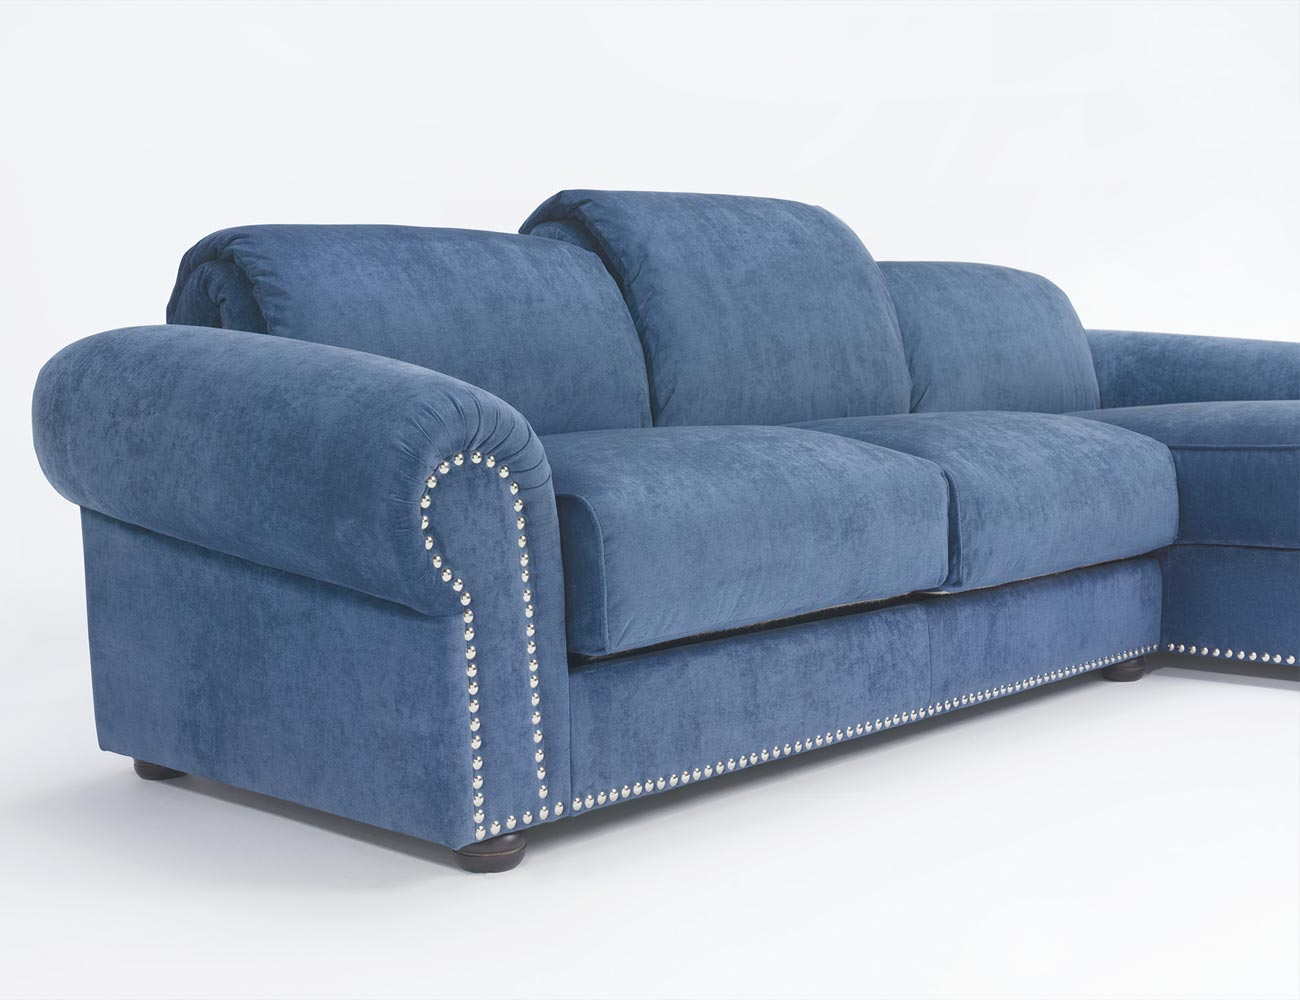 Sofa chaiselongue gran lujo decorativo azul 11